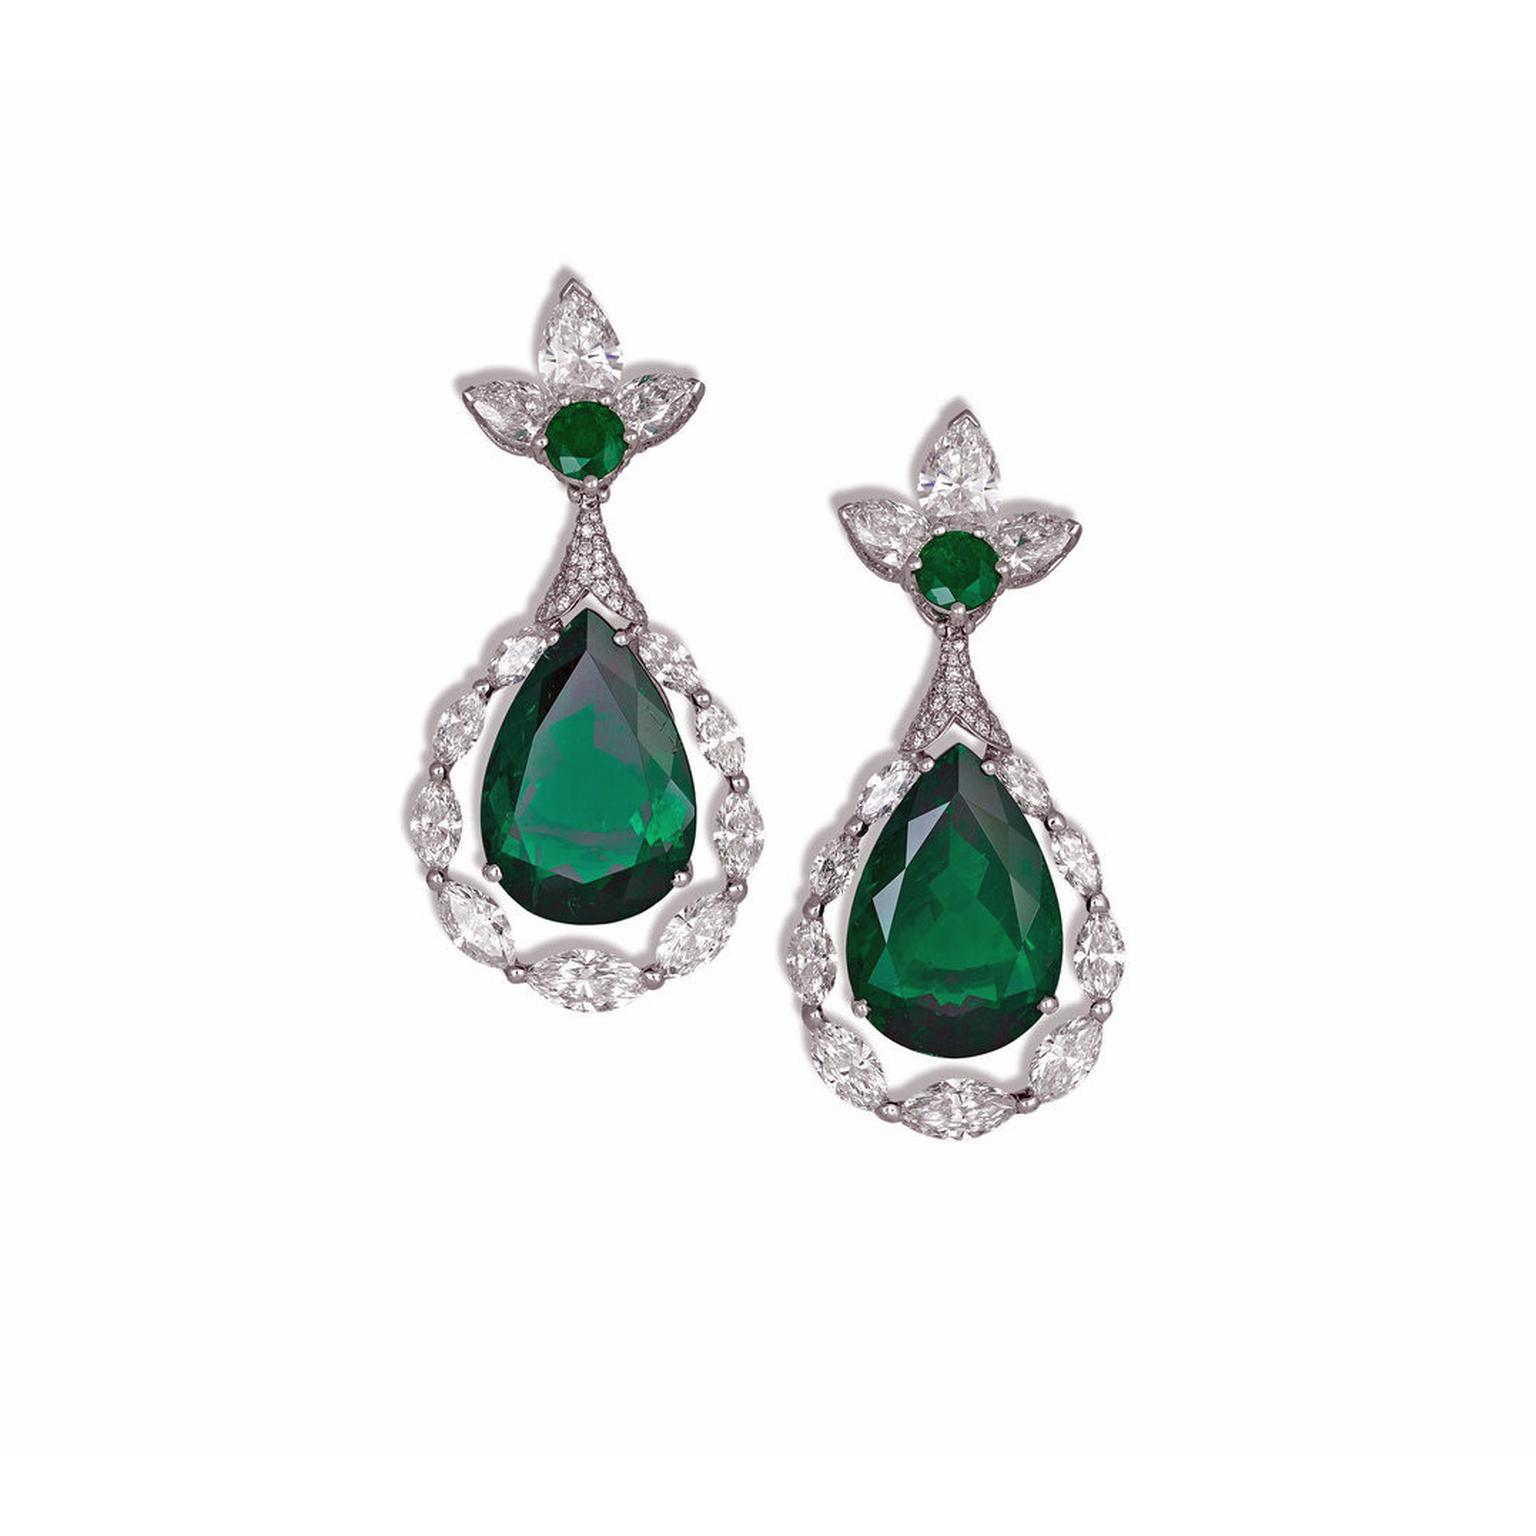 David Morris earrings